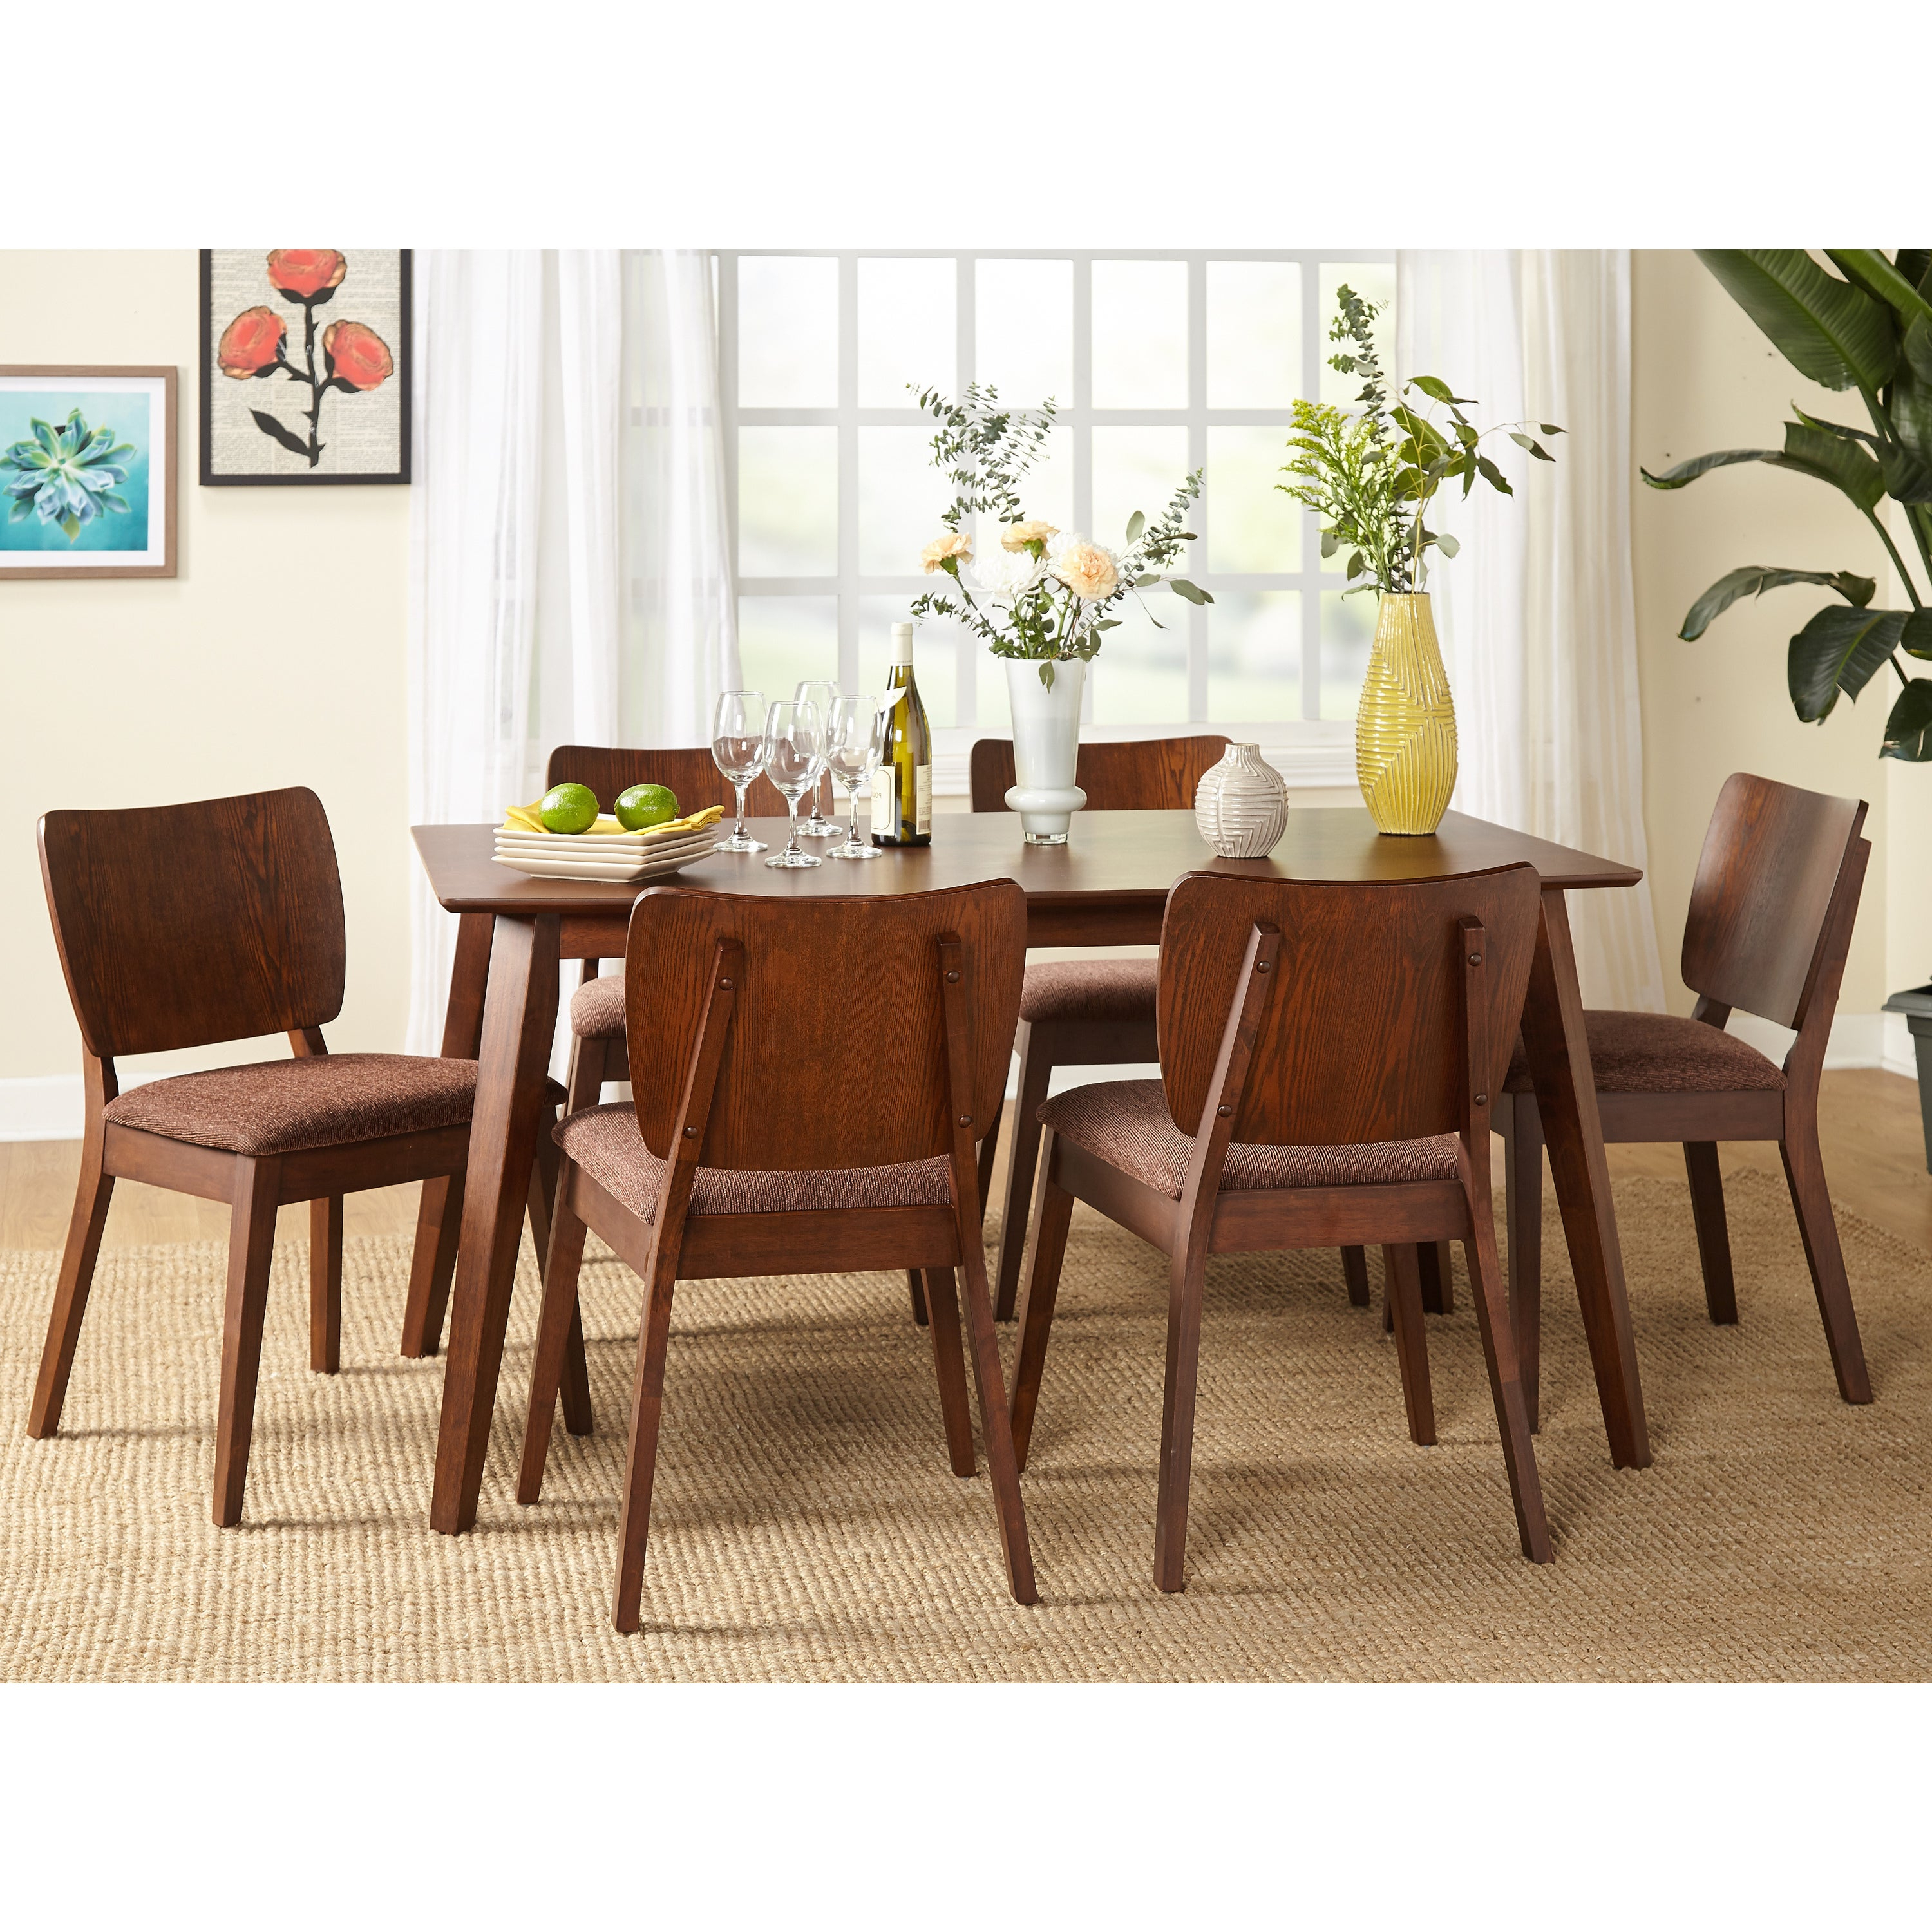 Well Known Cargo 5 Piece Dining Sets Pertaining To Buy 5 Piece Sets Kitchen & Dining Room Sets Online At Overstock (View 24 of 25)